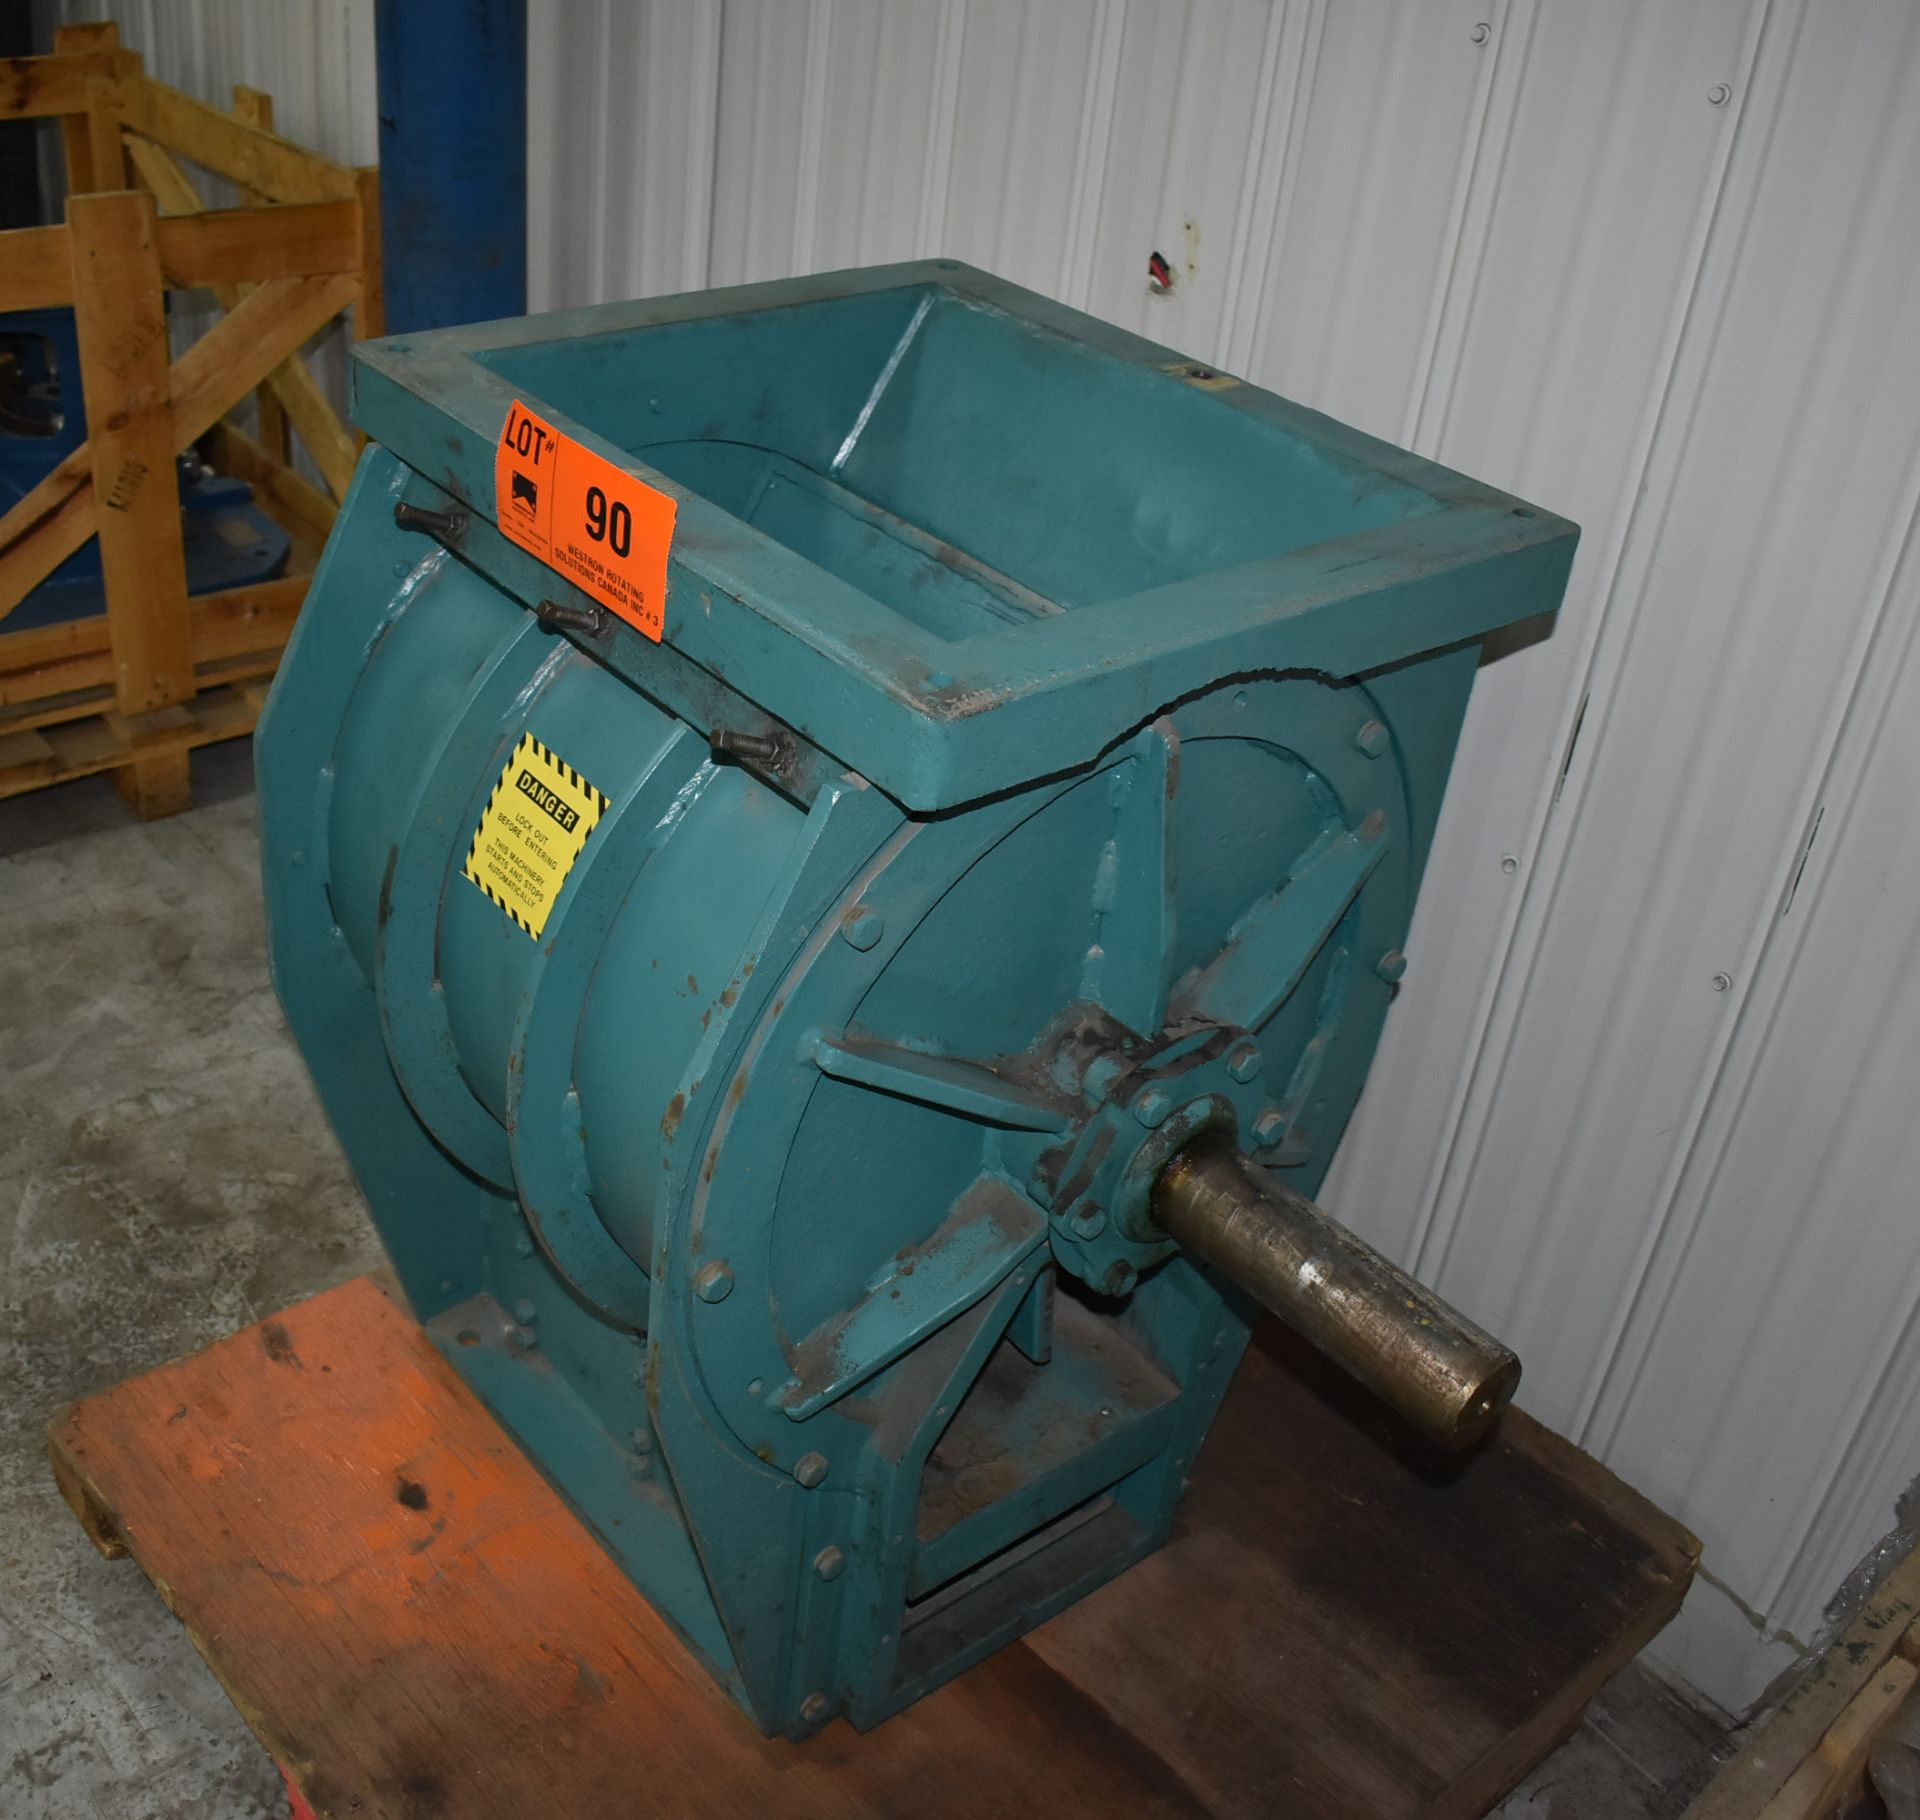 ACO FEEDER INDUSTRIAL WOOD CHIPPER, S/N: N/A [SKU 1357] (CI) [RIGGING FEE FOR LOT #90 - $25 CAD PLUS - Image 3 of 4